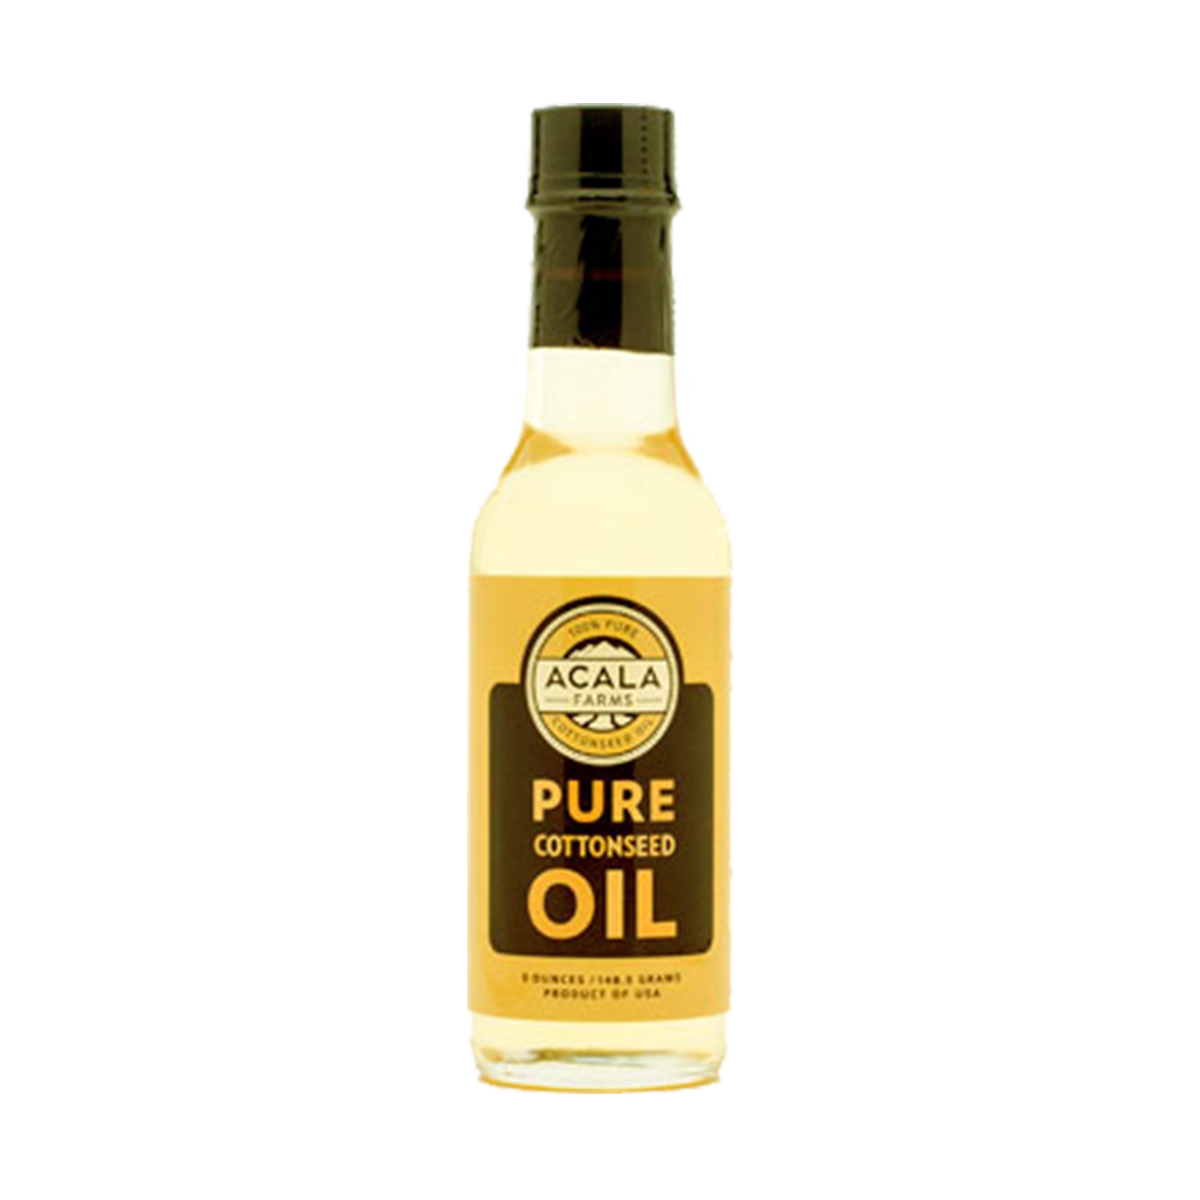 Pure Cottonseed Oil